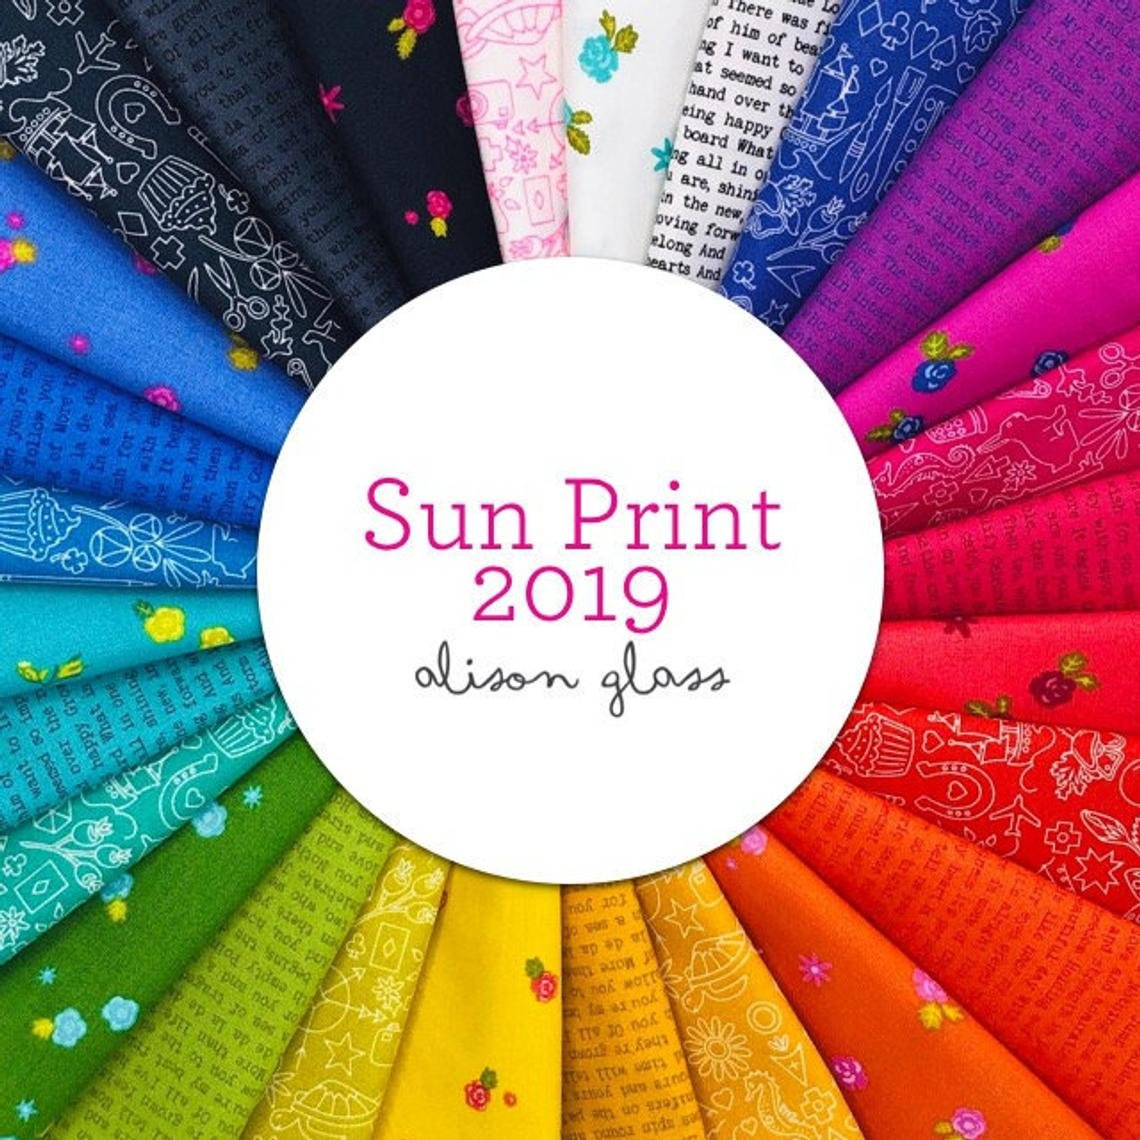 Sun Print 2019 Single Scoop/Charm Pack/5 in. squares by Alison Glass